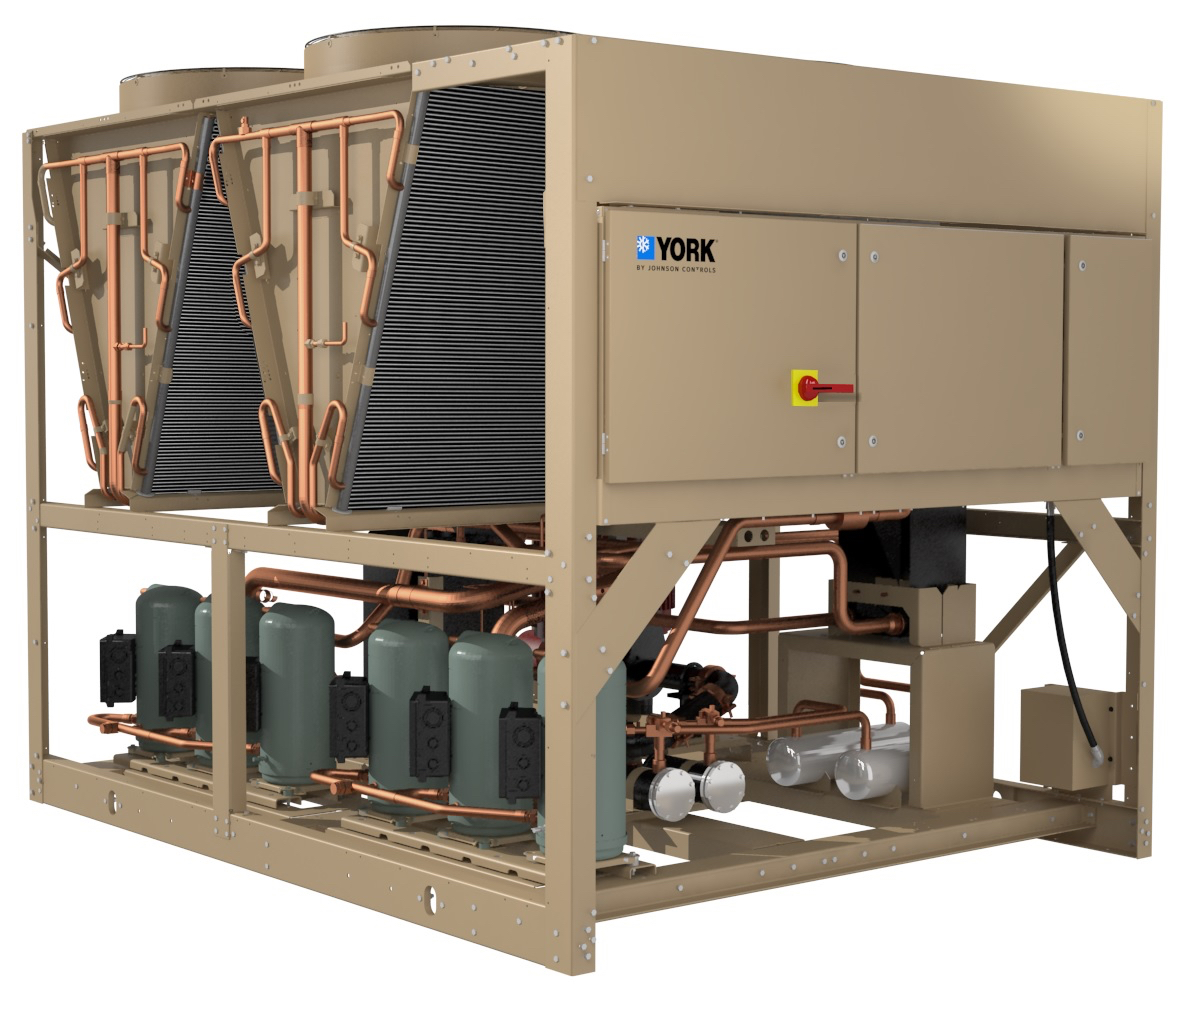 YORK YLAA scroll chiller with low-GWP R-454B refrigerant